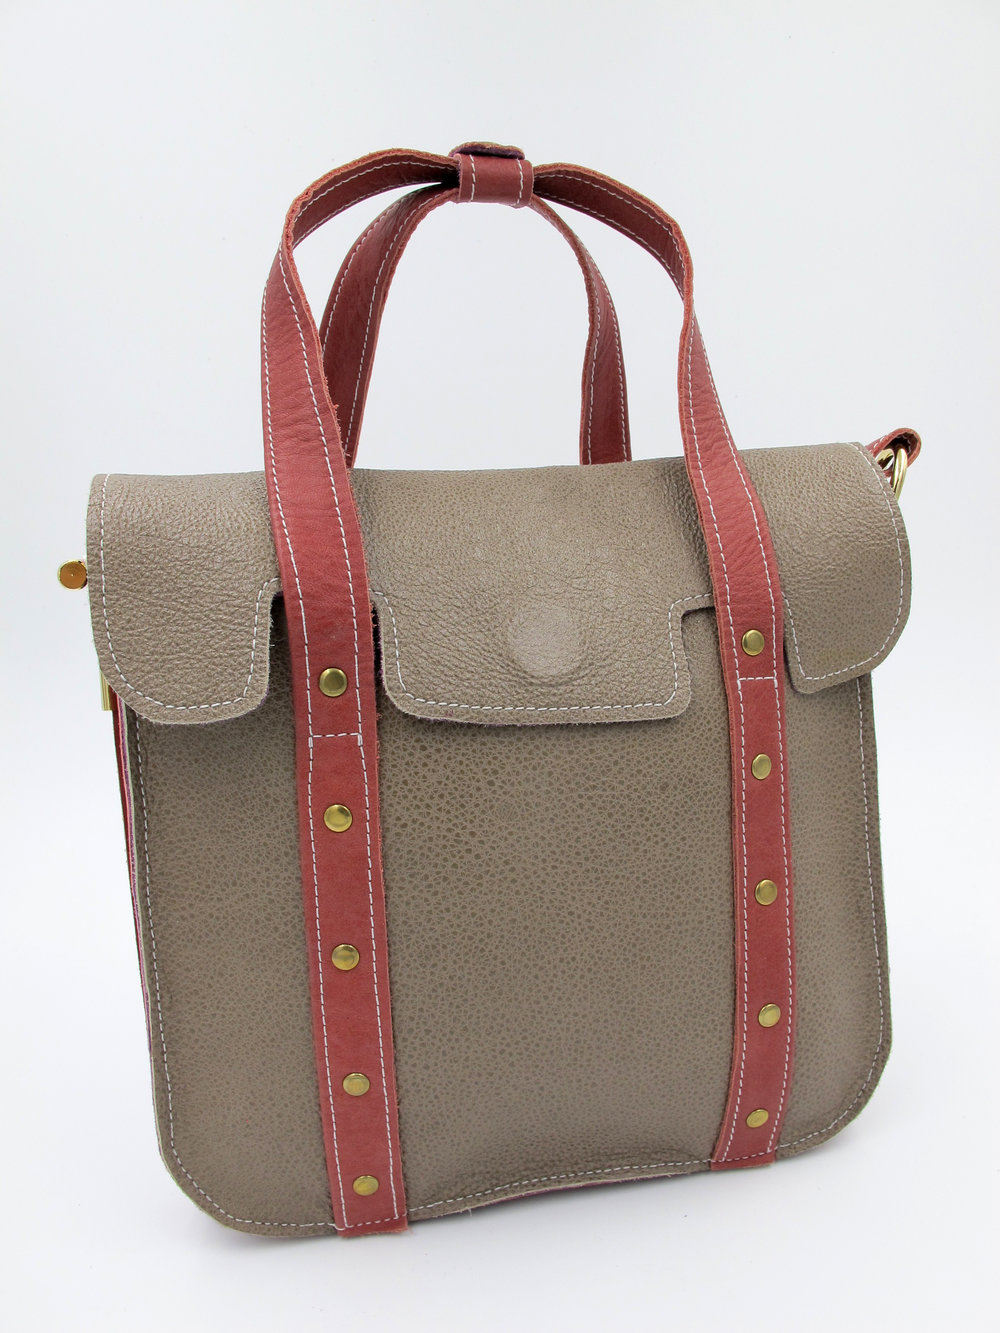 Handcrafted leather bag, made in England by Harriet Sanders